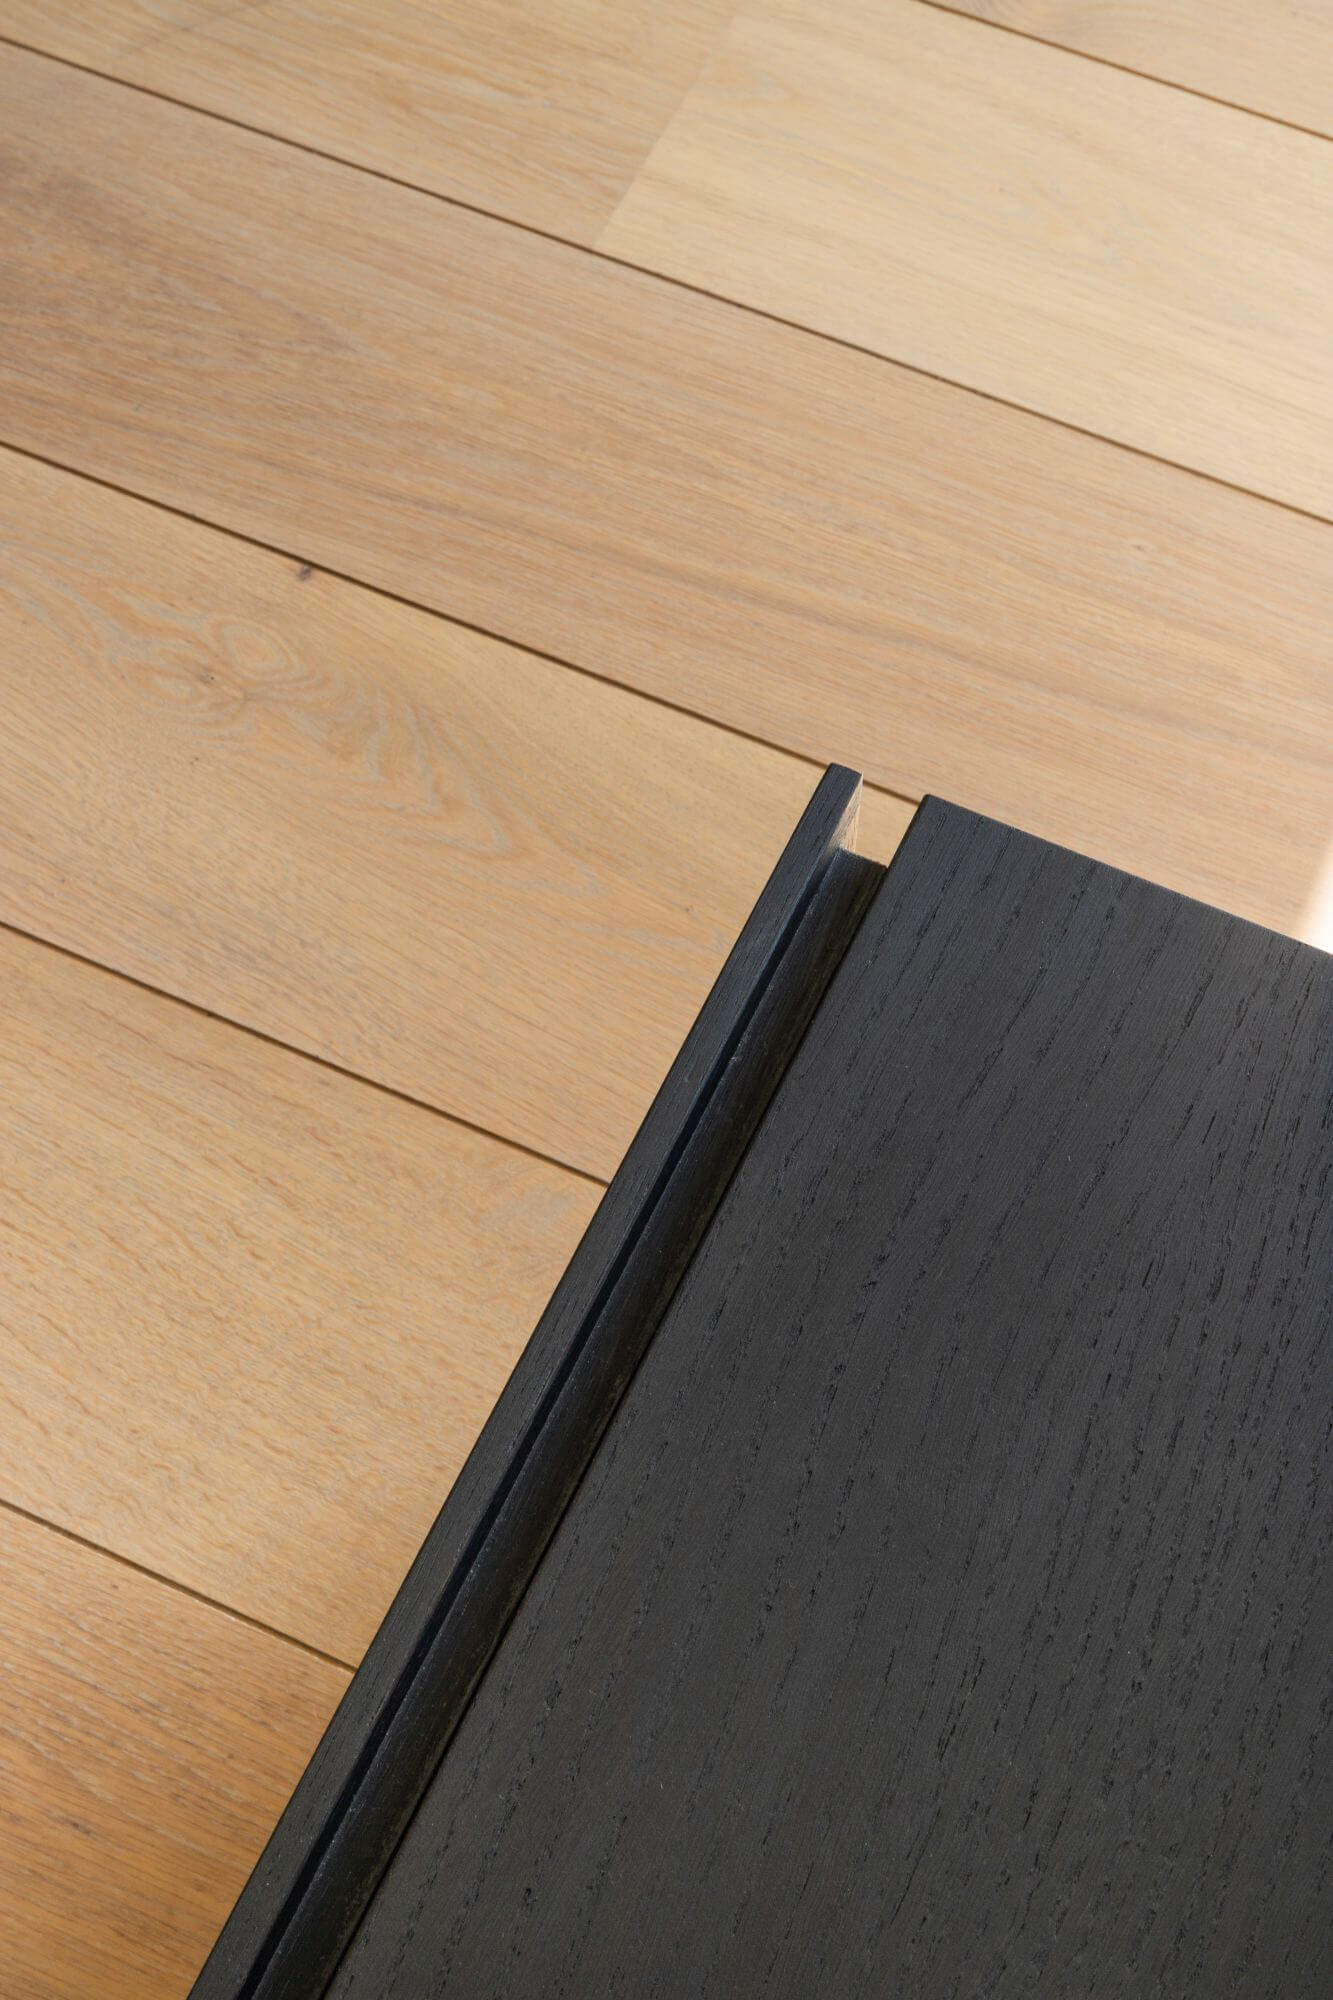 Details of wooden floor finished with Rubio Monocoat.